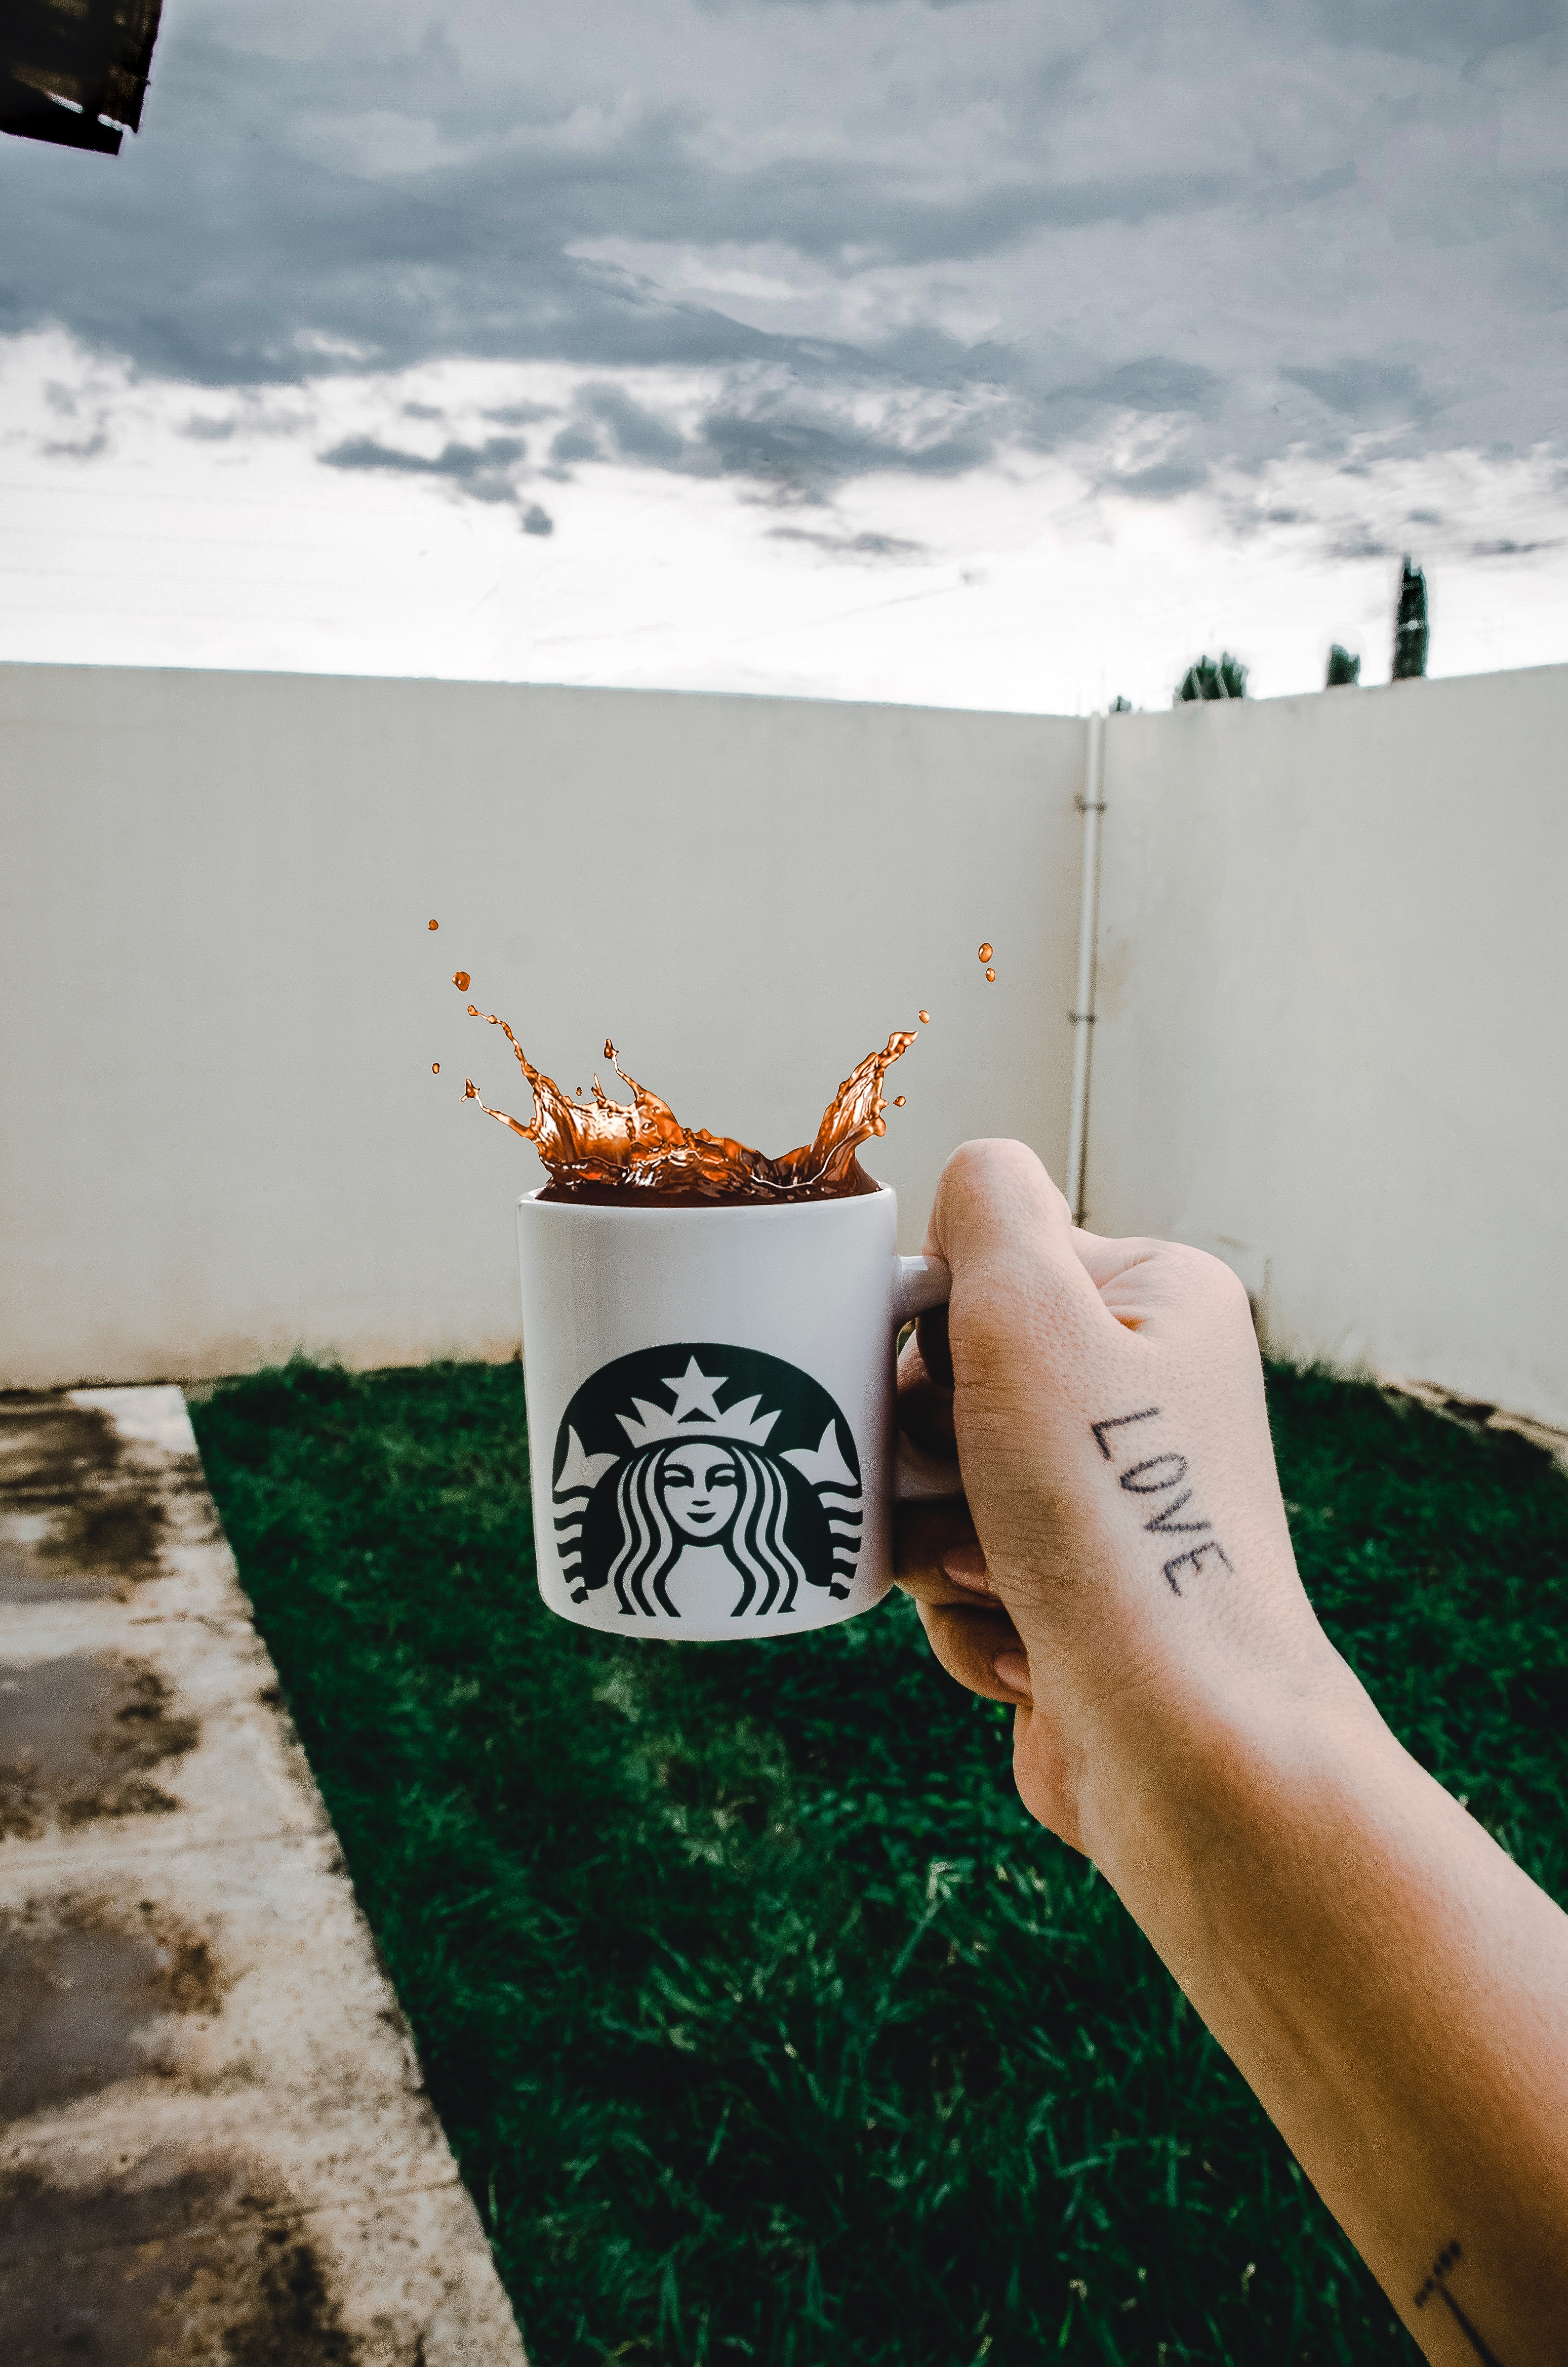 Person Holding Starbucks Cup With Brown Beverage, Grass, Starbucks, Person, Outdoors, HQ Photo